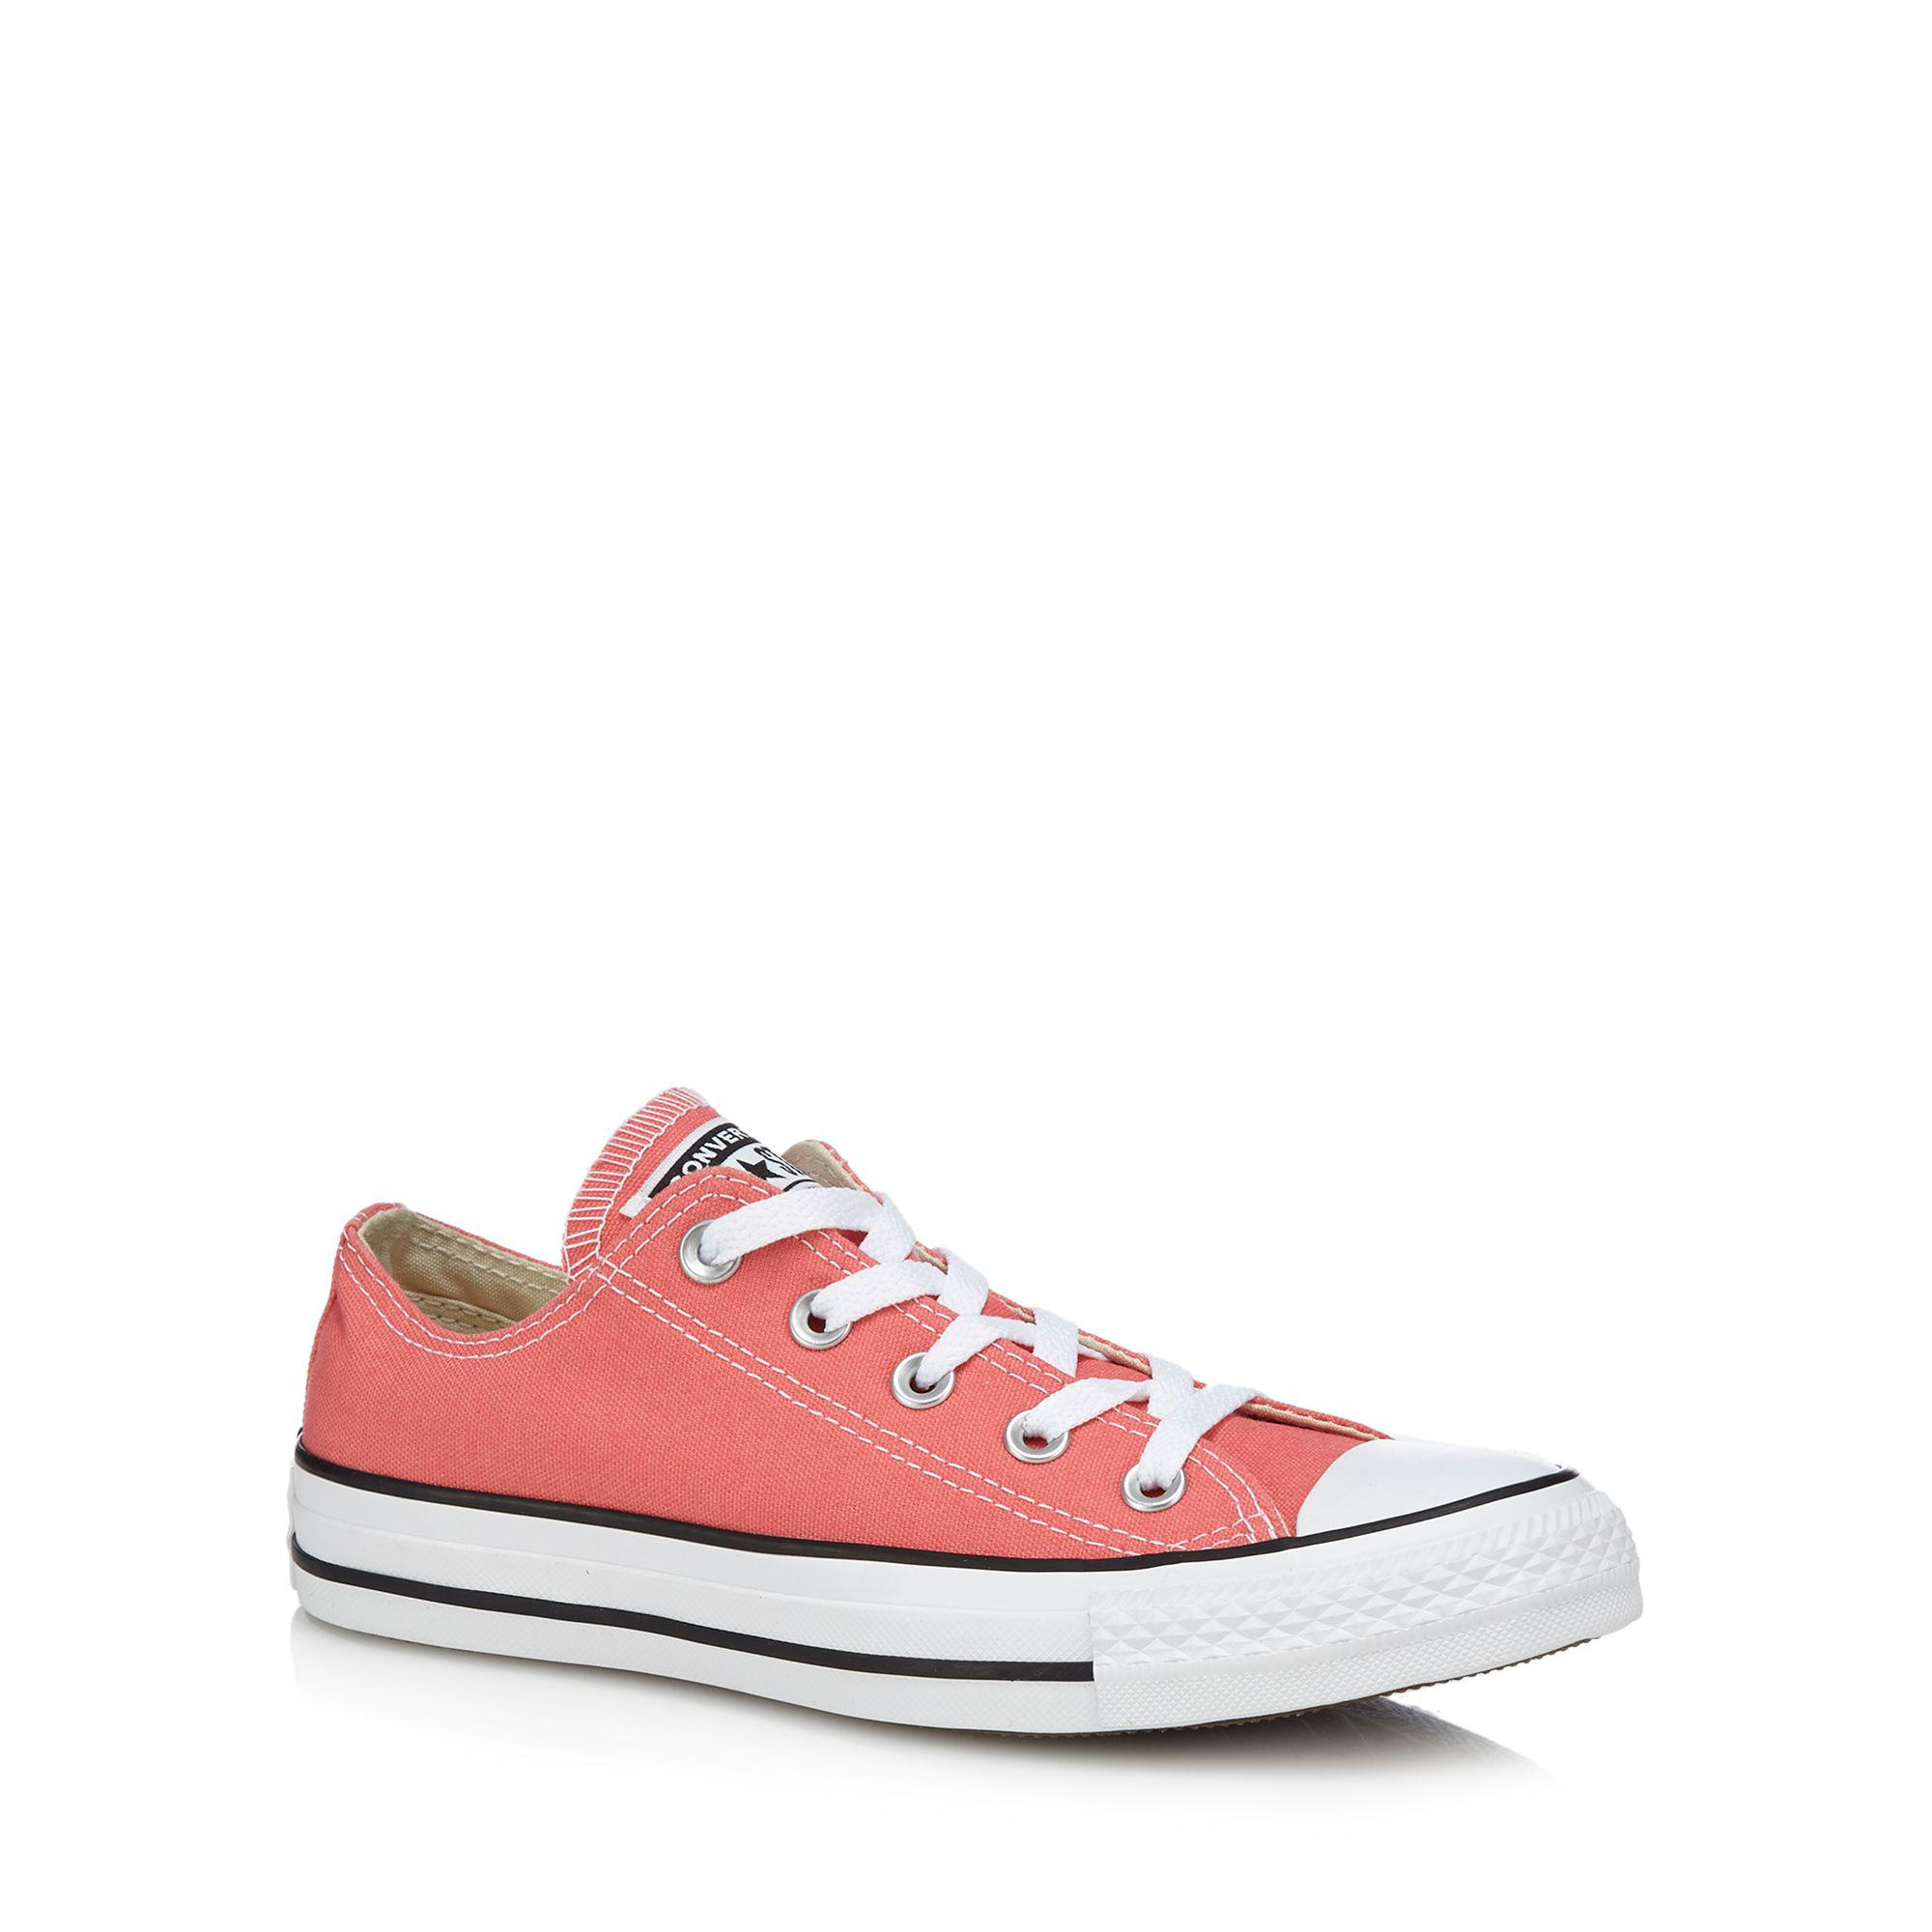 171e622d09c0 Converse Coral Canvas  chuck Taylor All Star  Trainers in Pink - Lyst